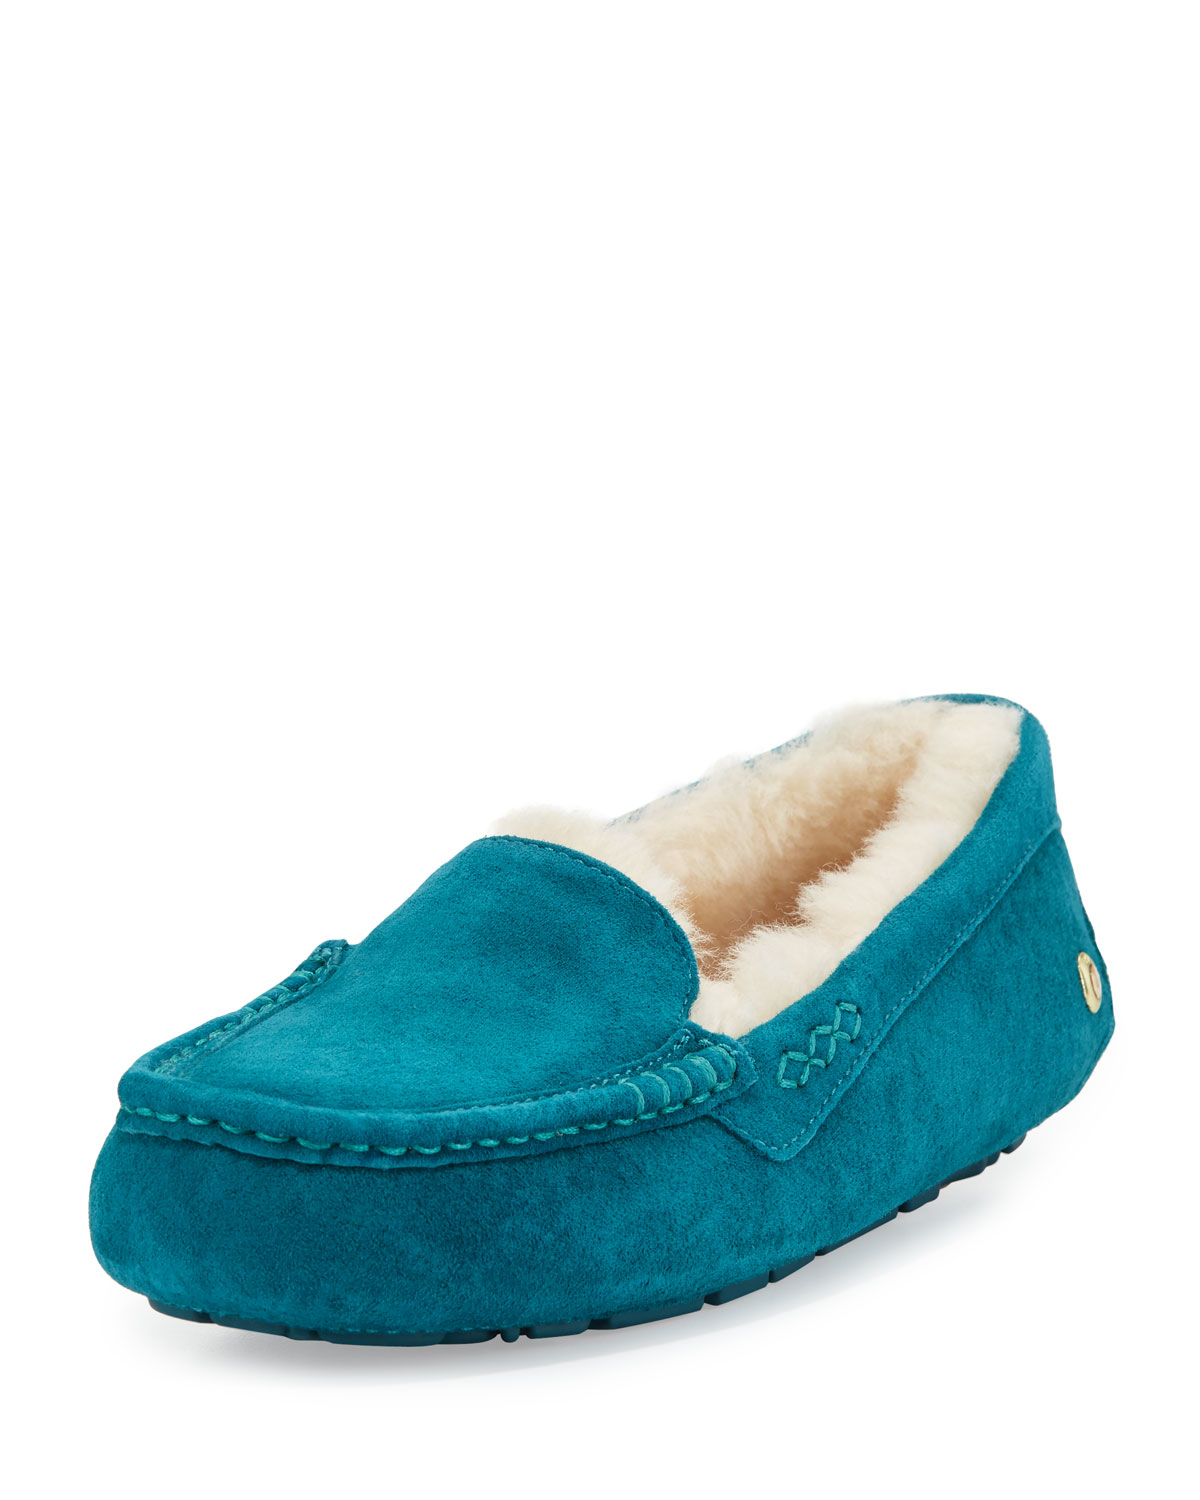 38981d00e60 UGG Ansley Suede Moccasin Slippers - Lyst